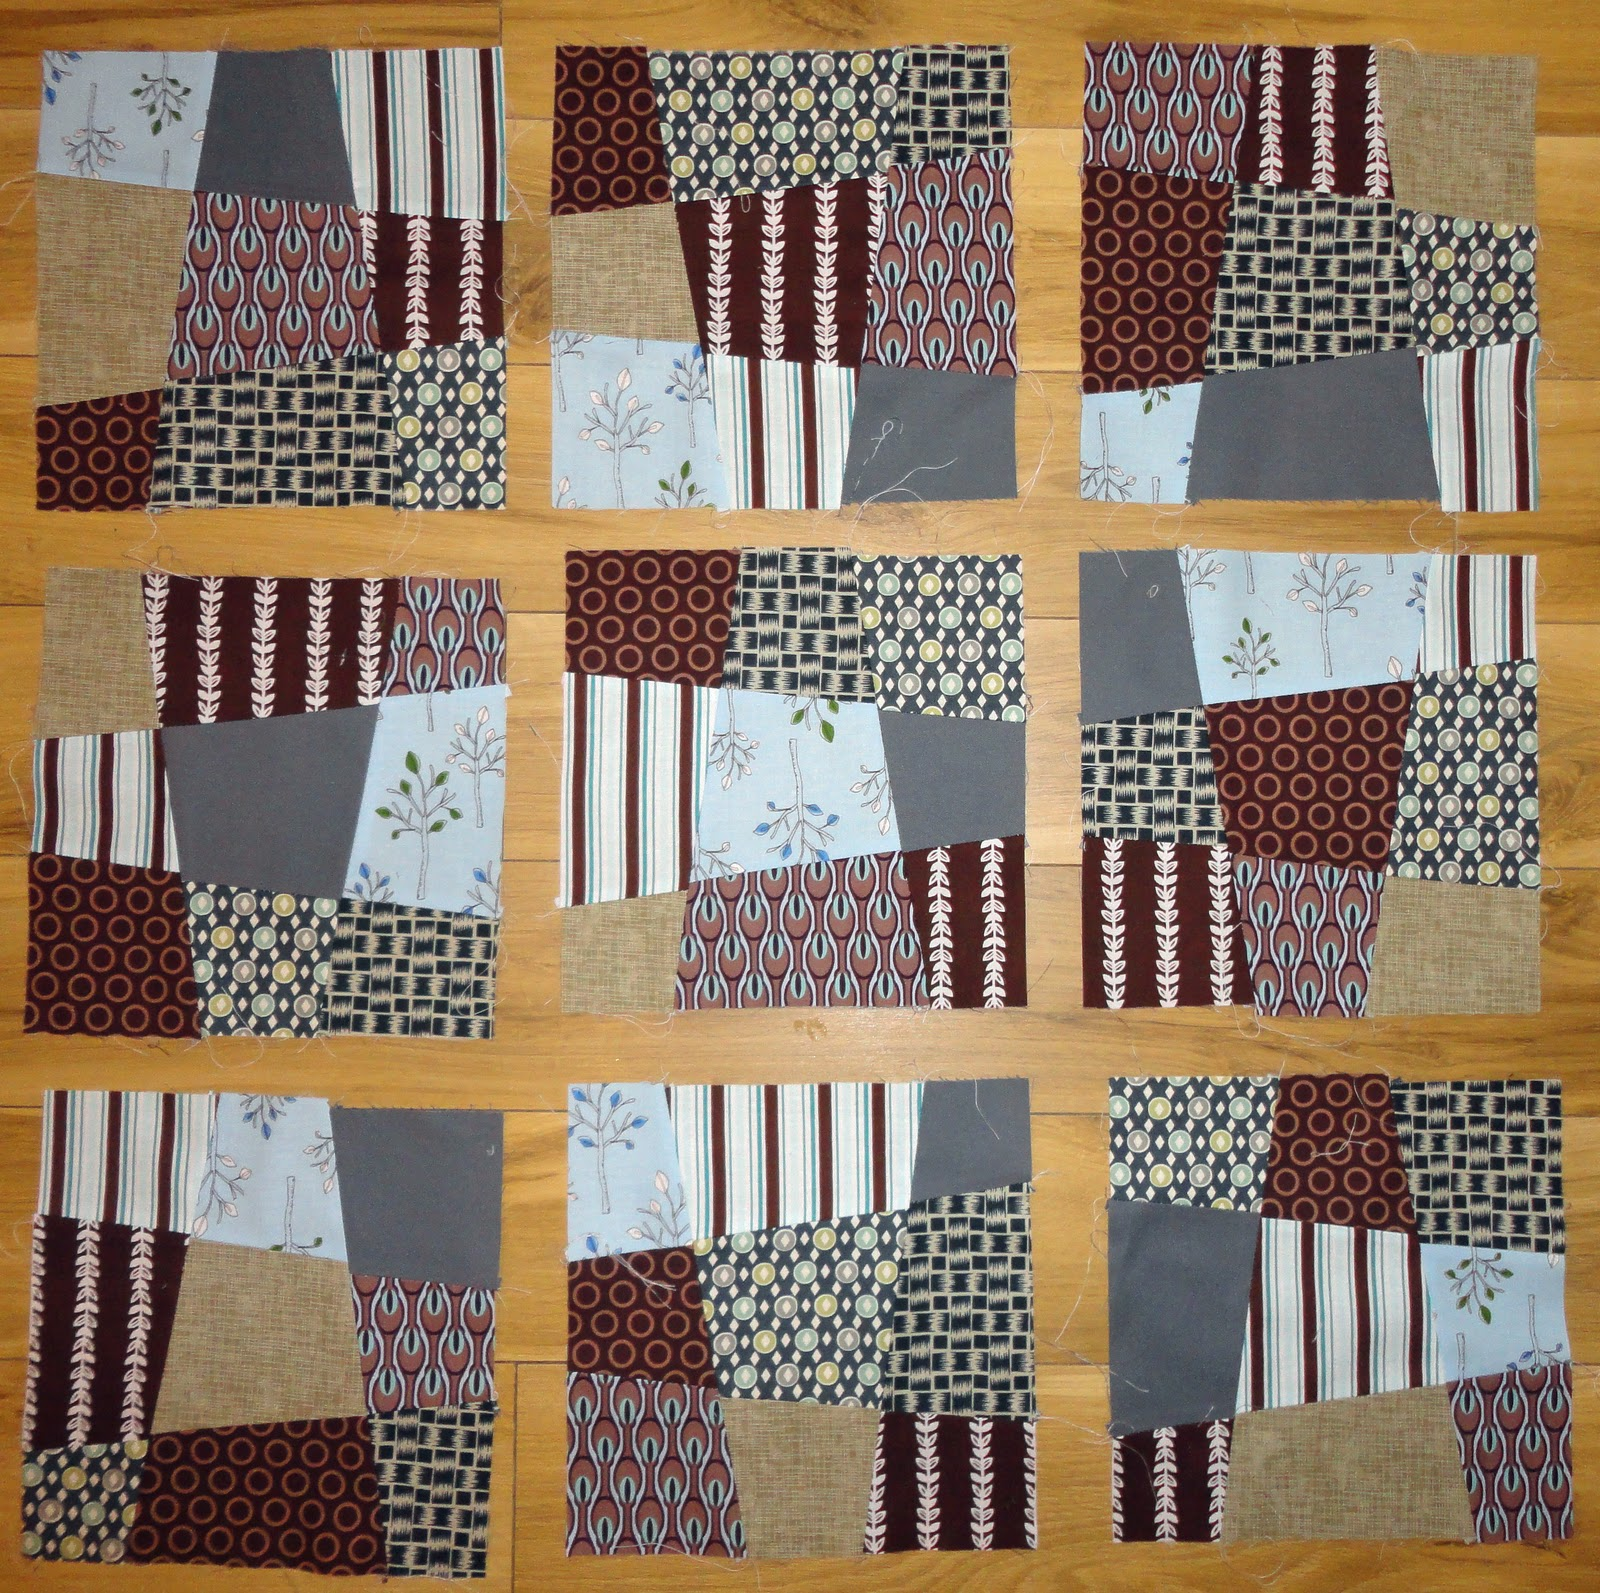 Chic Quilt Geek: Crazy Nine Patch Blocks : crazy nine patch quilt - Adamdwight.com